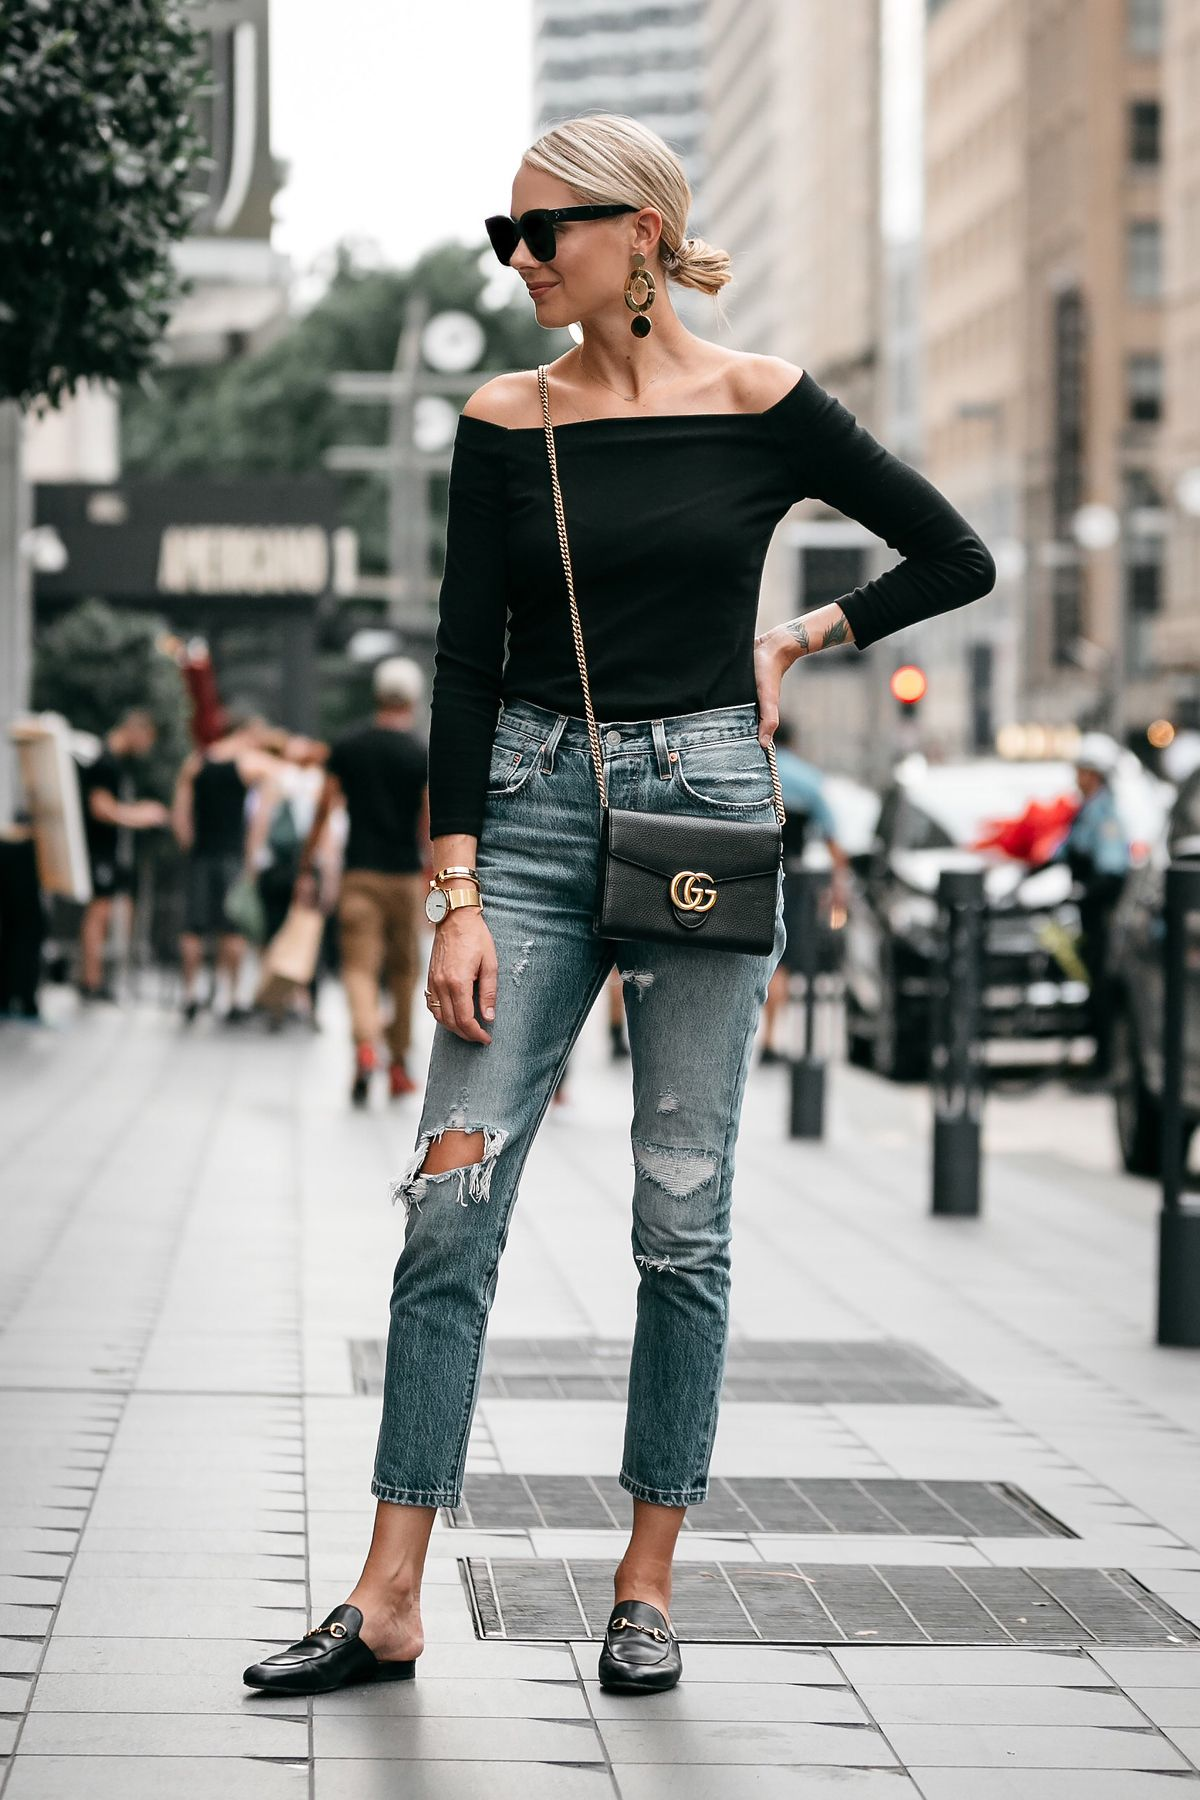 e0352b1791dc Blonde Woman Wearing Jcrew black off the shoulder top Levis Denim Ripped  Jeans Gucci Marmont Handbag